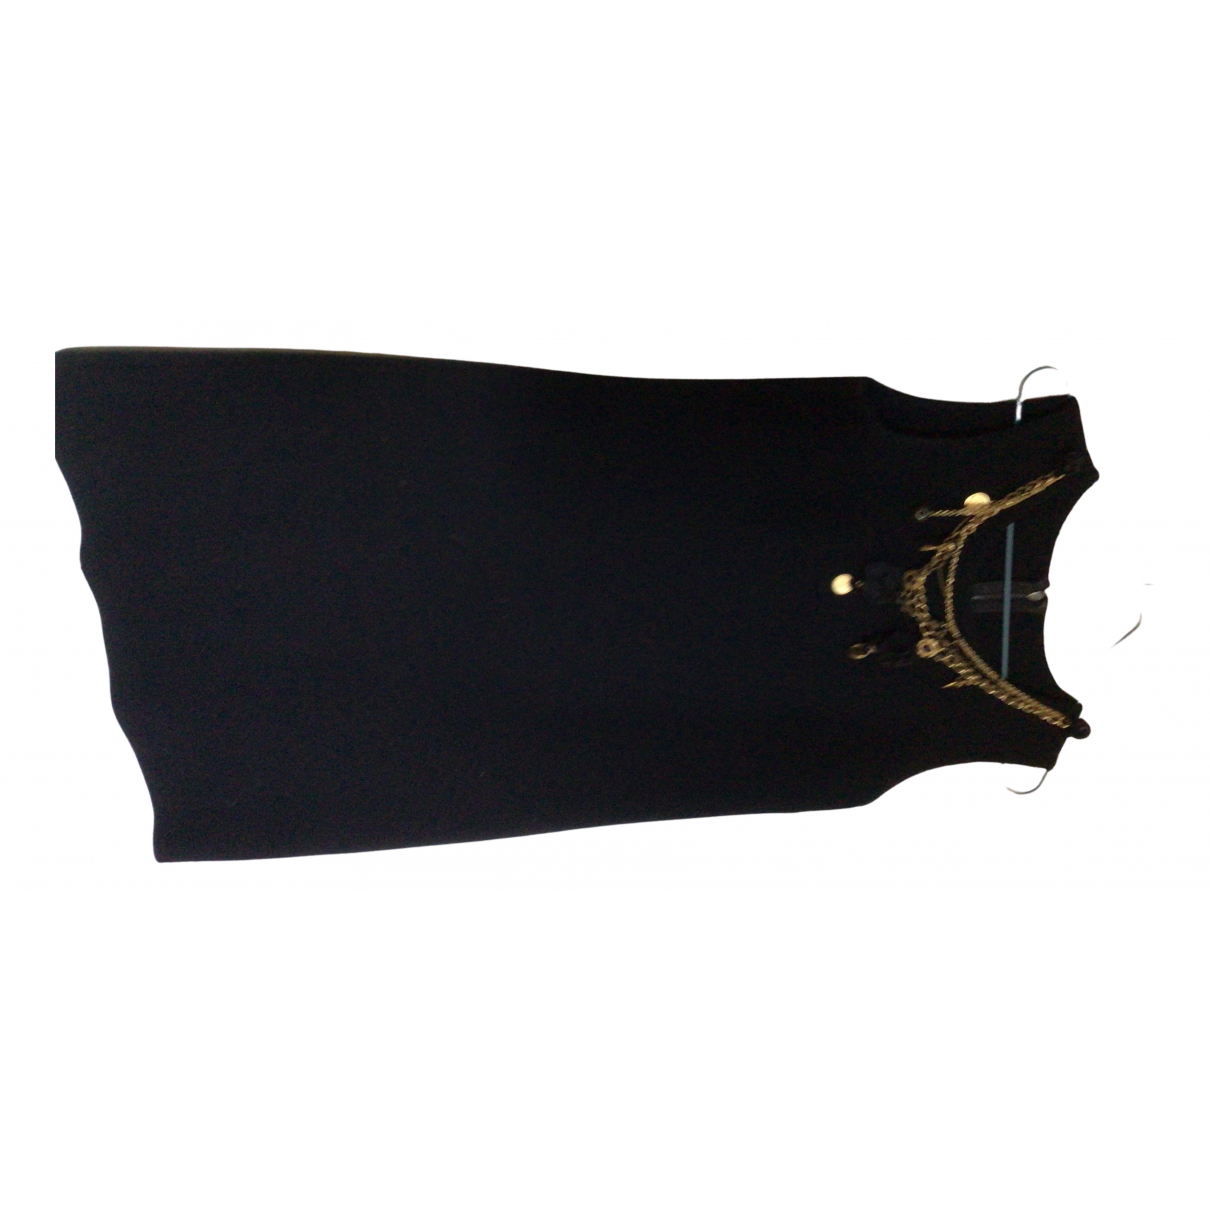 Dolce & Gabbana N Black Wool dress for Women 40 IT